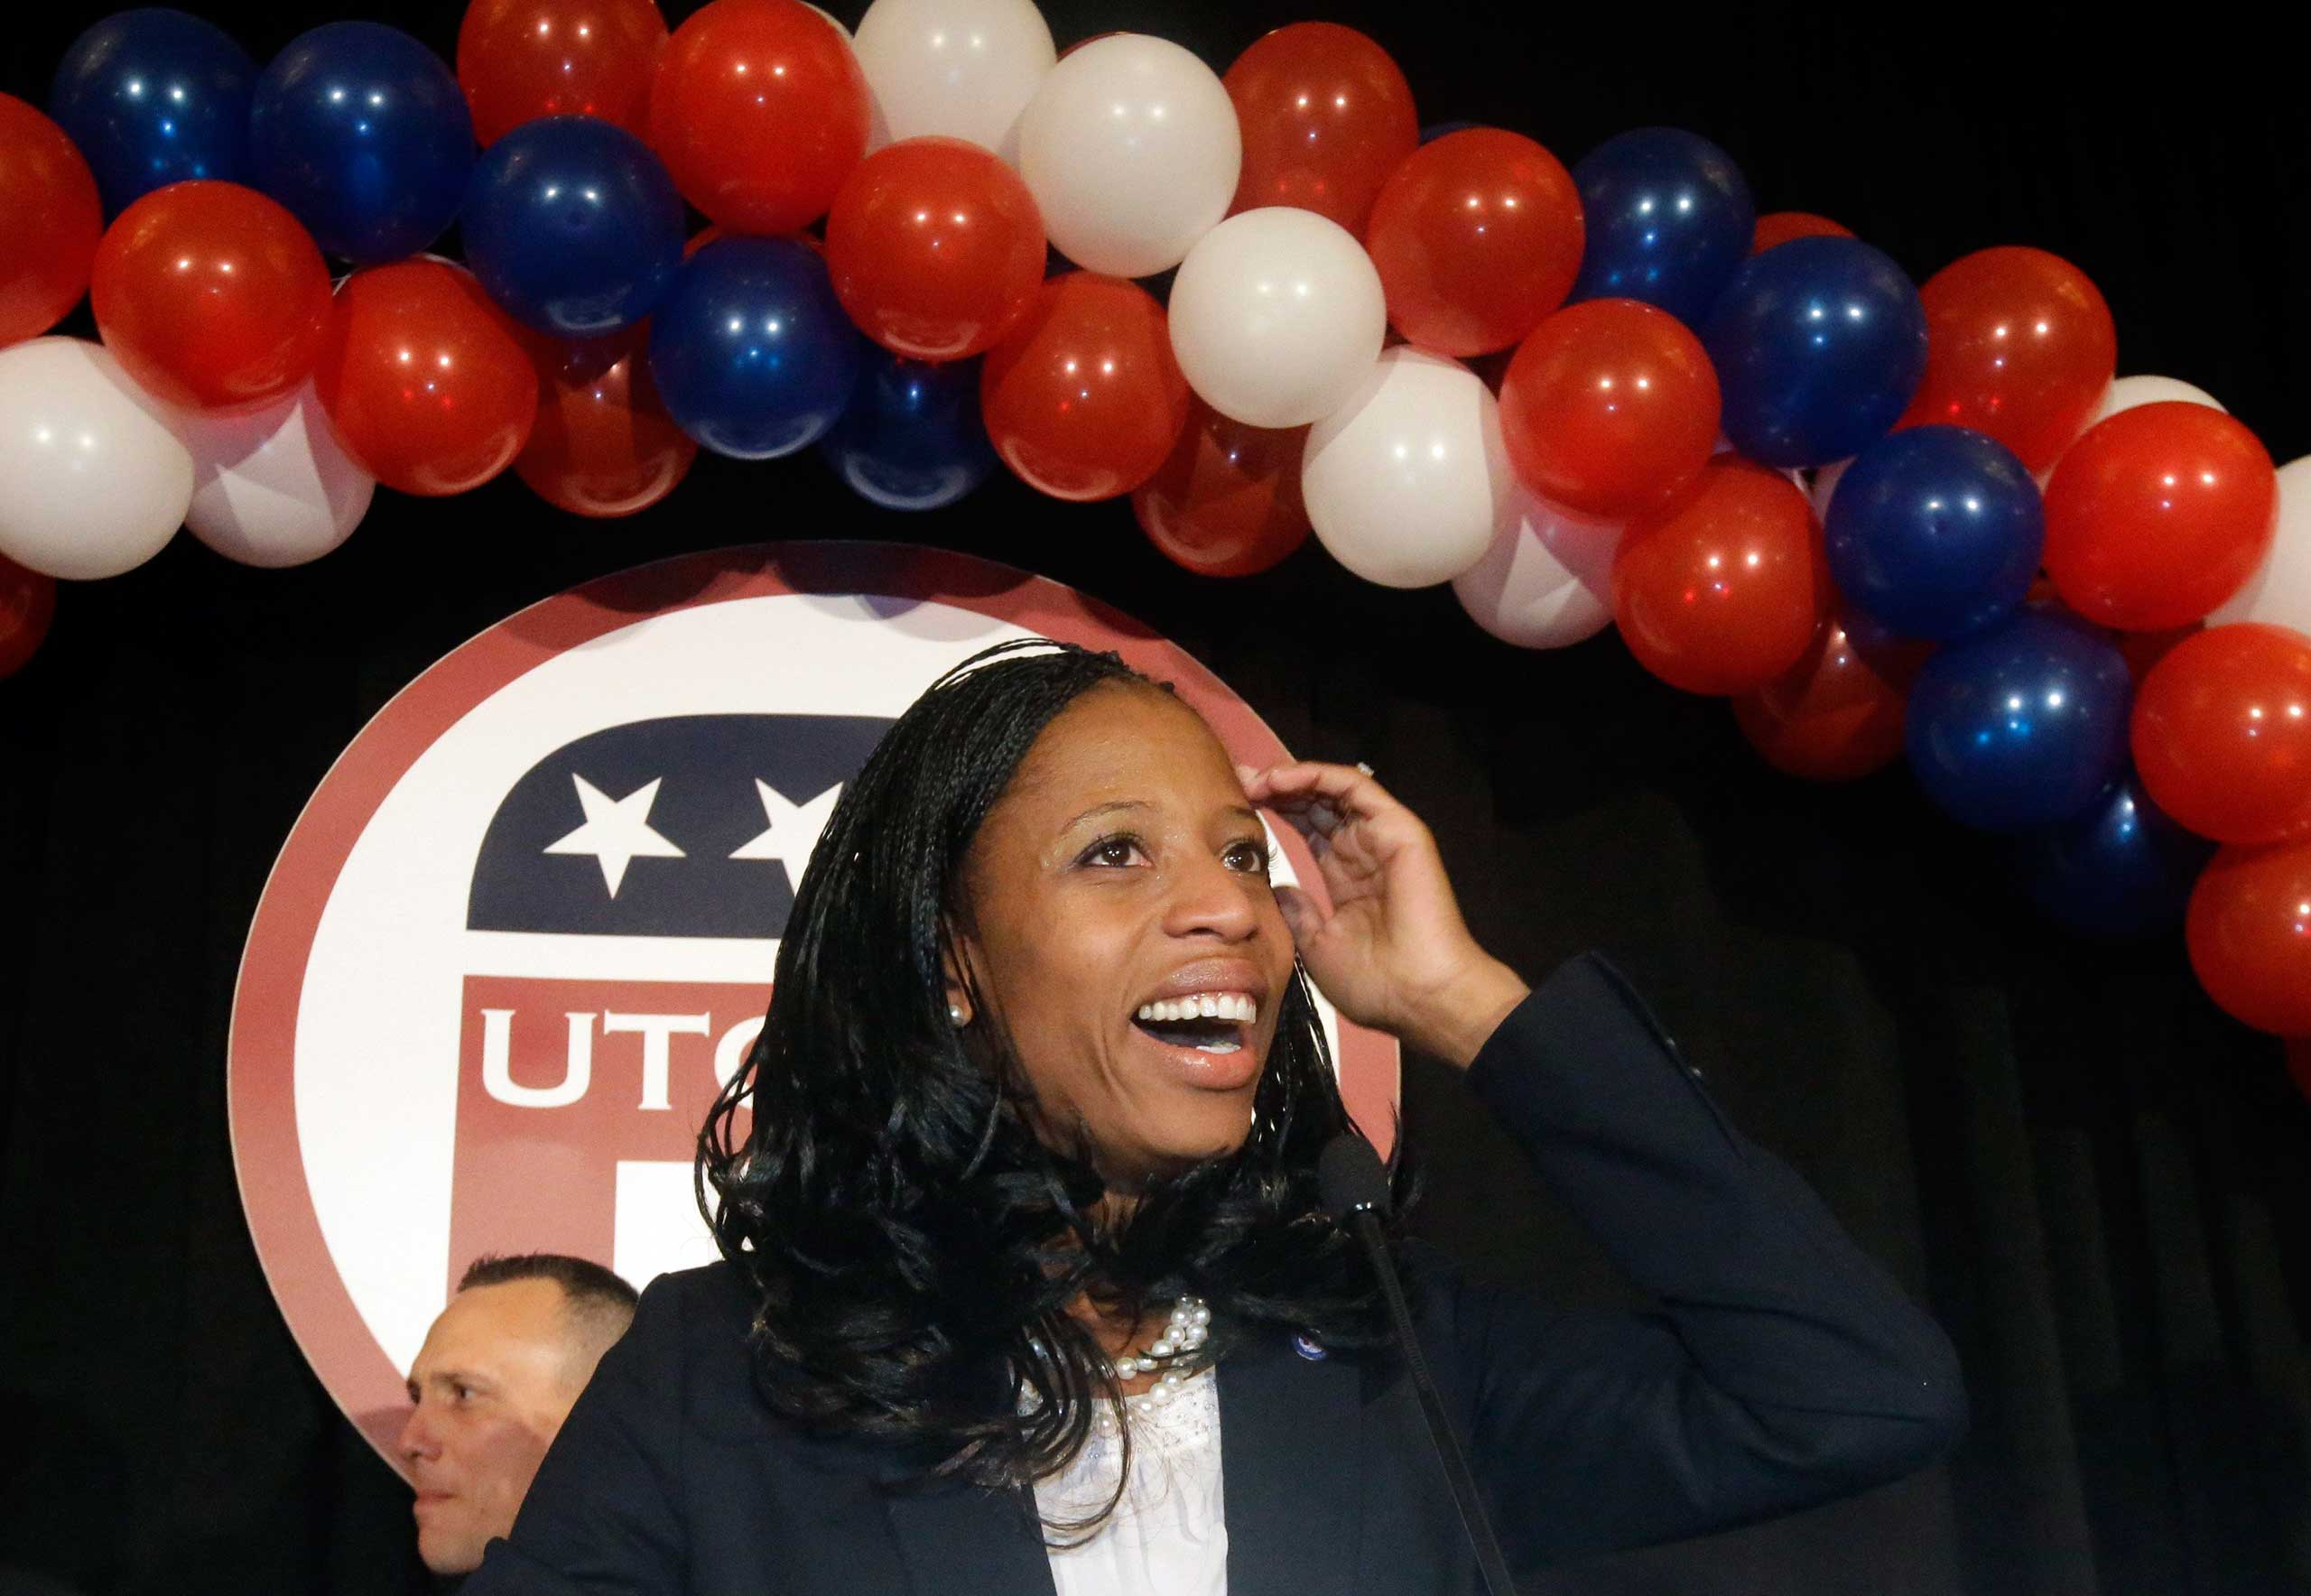 Republican Mia Love celebrates with her supporters after winning the race for Utah's 4th Congressional District during a GOP election night watch party in Salt Lake City on Nov. 4, 2014.